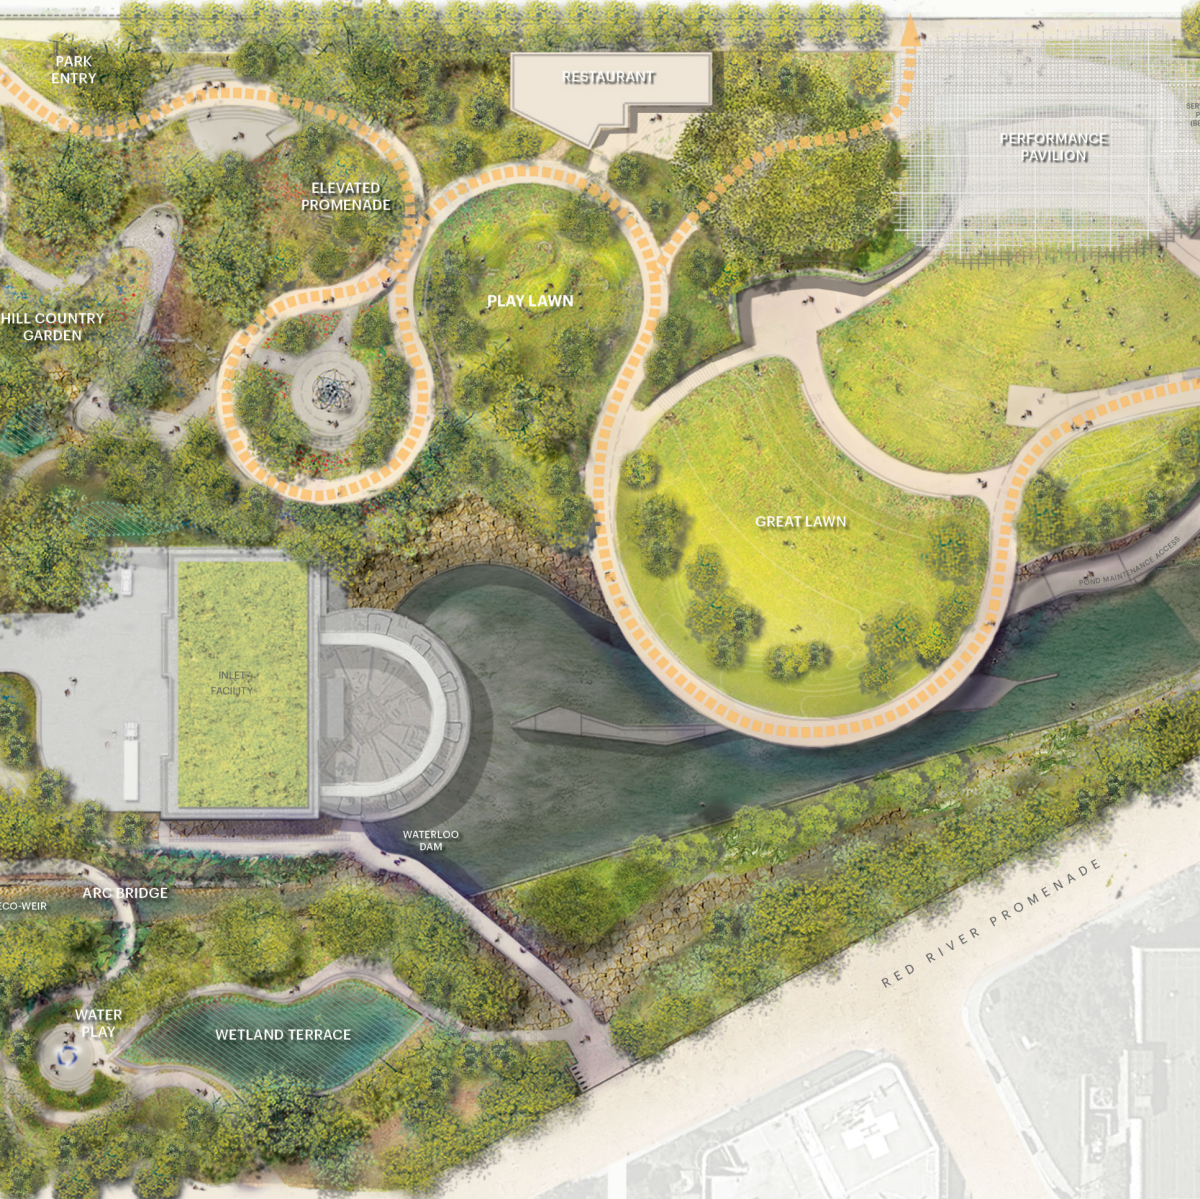 Waller Creek Site Plan